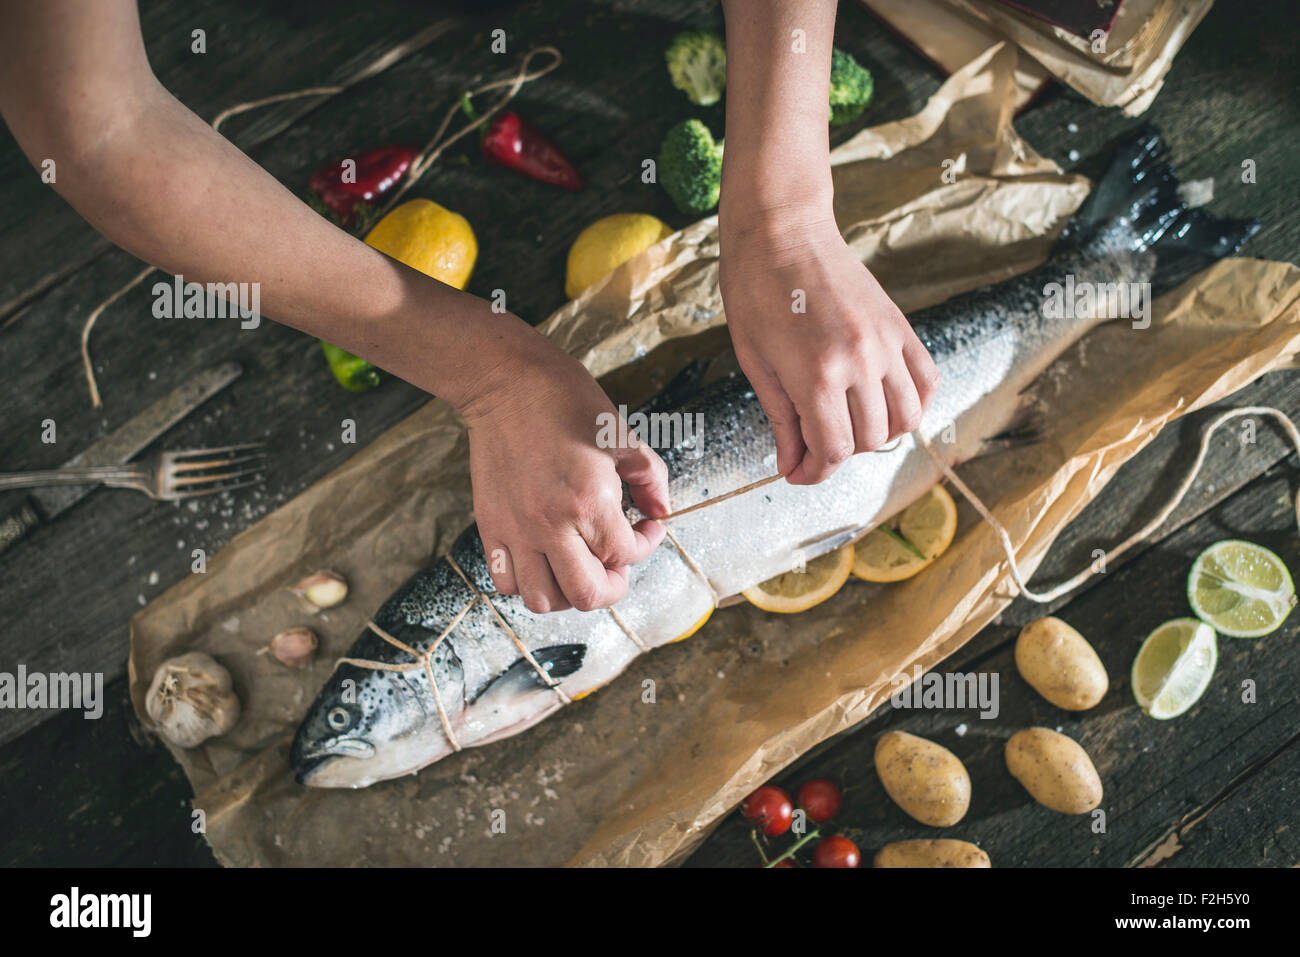 Tying a rope on fish for grilling. Baking paper - Stock Image